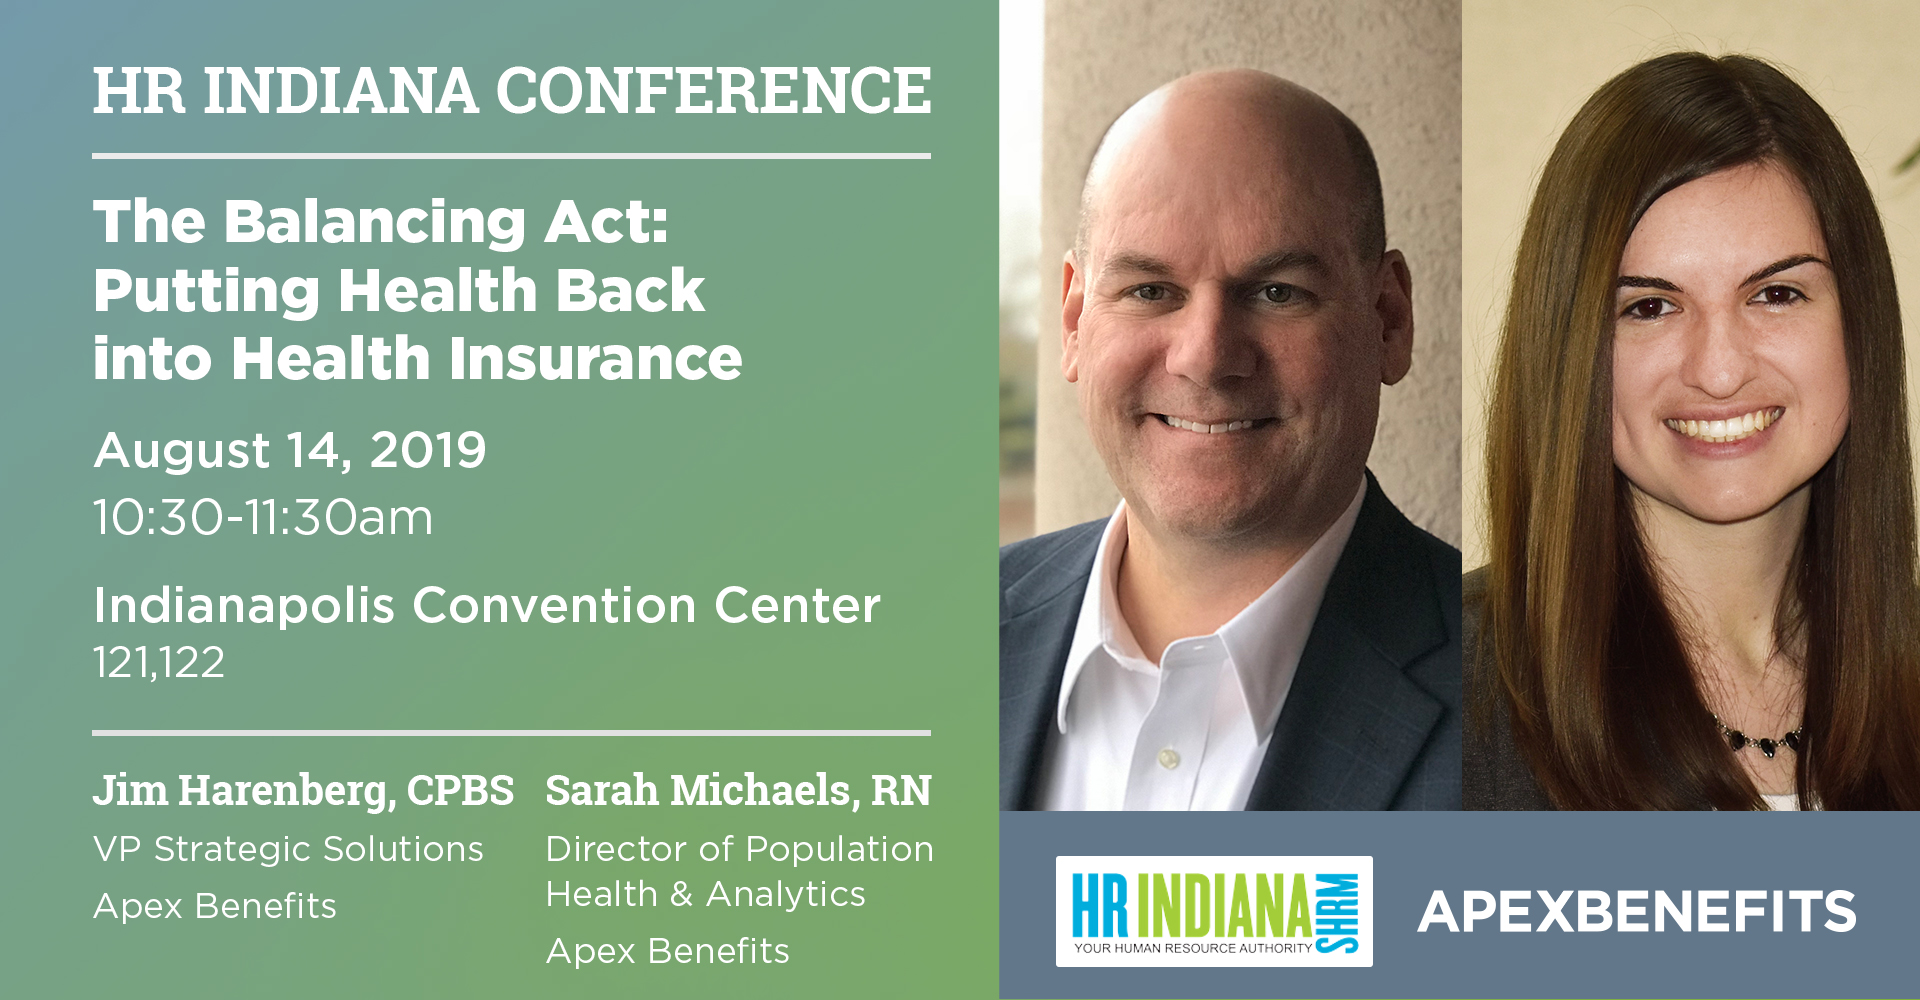 Apex Pharmacy and Wellness Experts to Present at the 2019 HR Indiana SHRM Conference